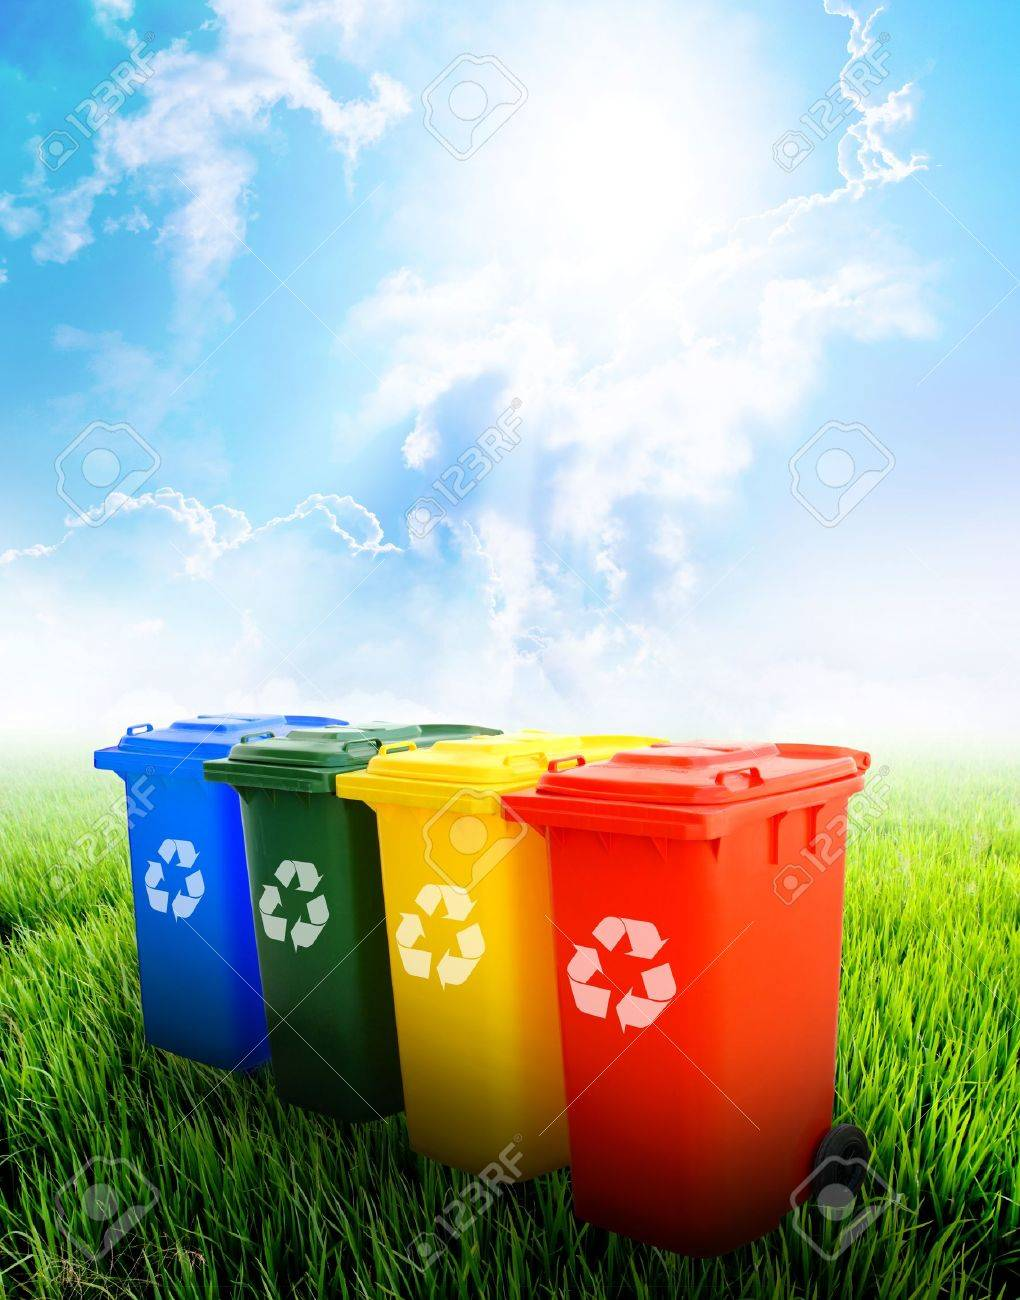 Colorful recycle bins ecology concept with landscape background. Stock Photo - 11065794